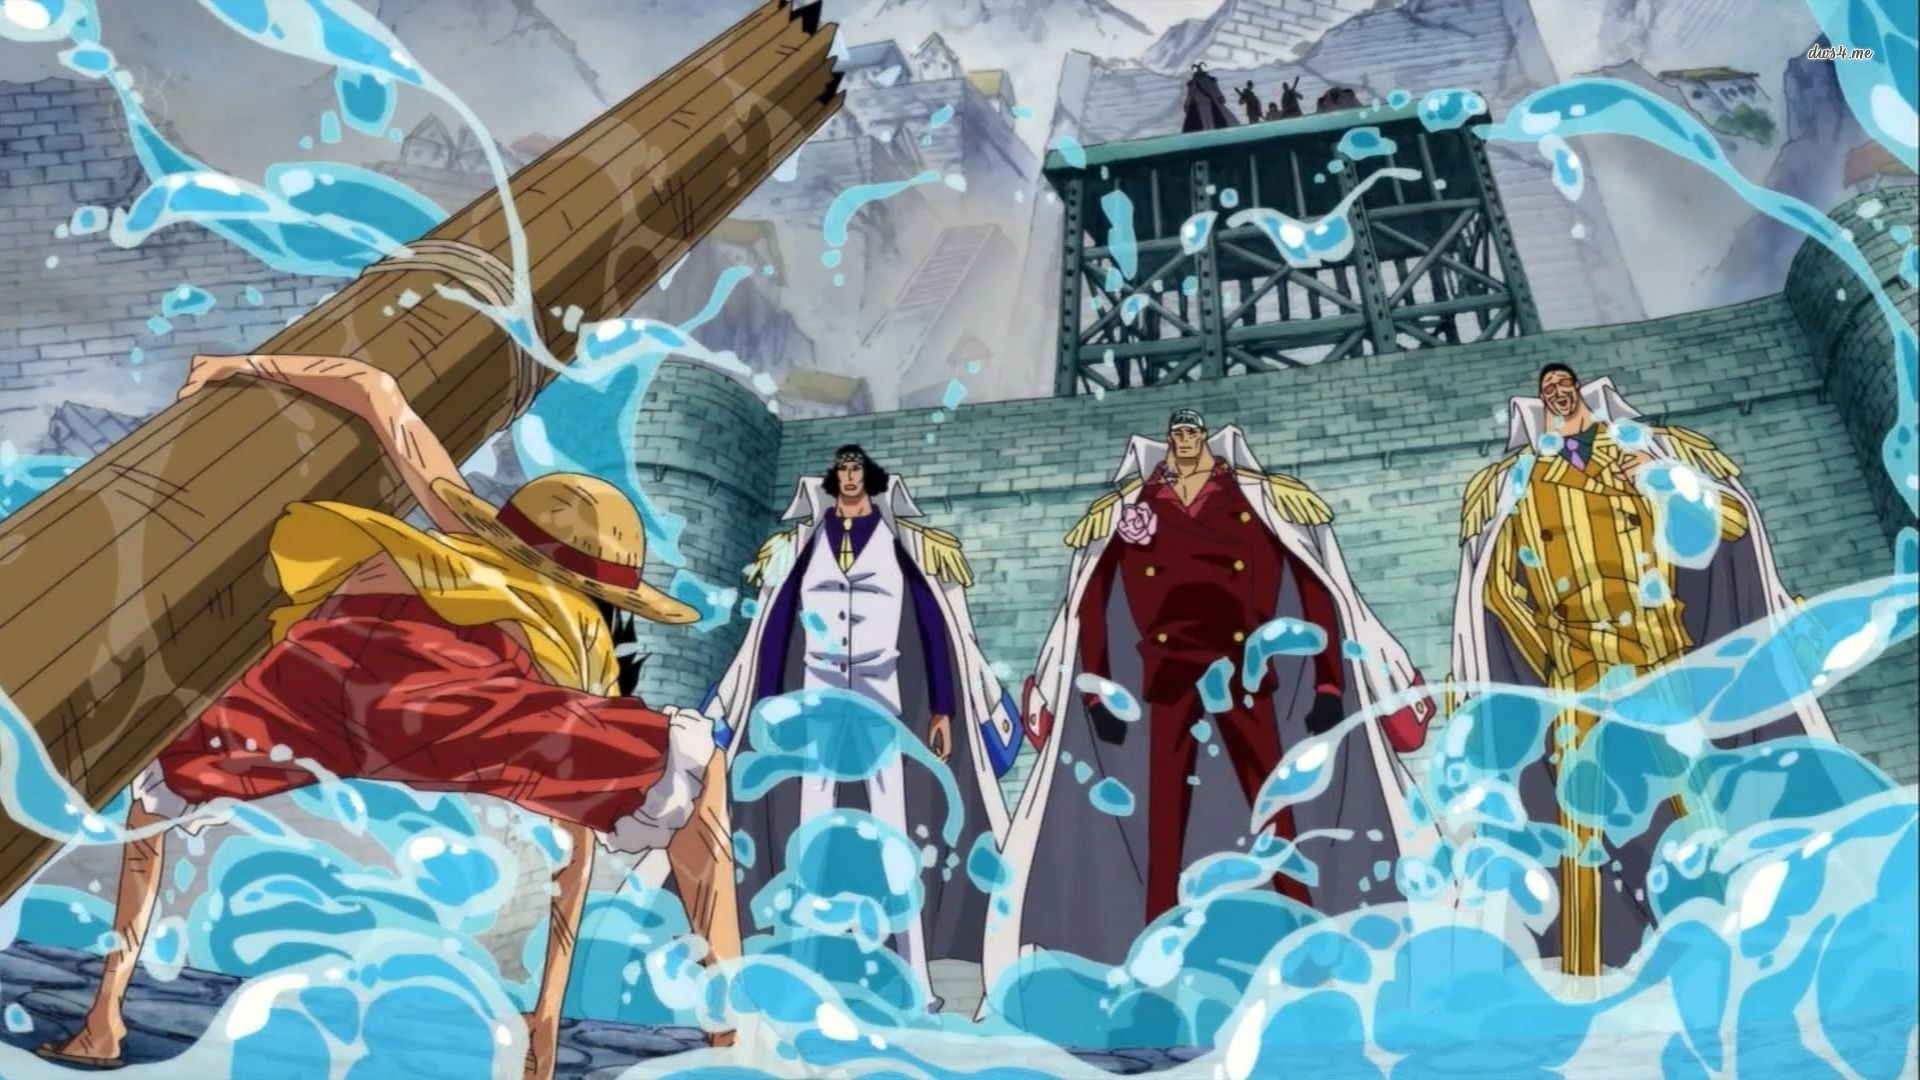 1920x1080 One Piece images Luffy & 3 Admirals HD wallpaper and background photos